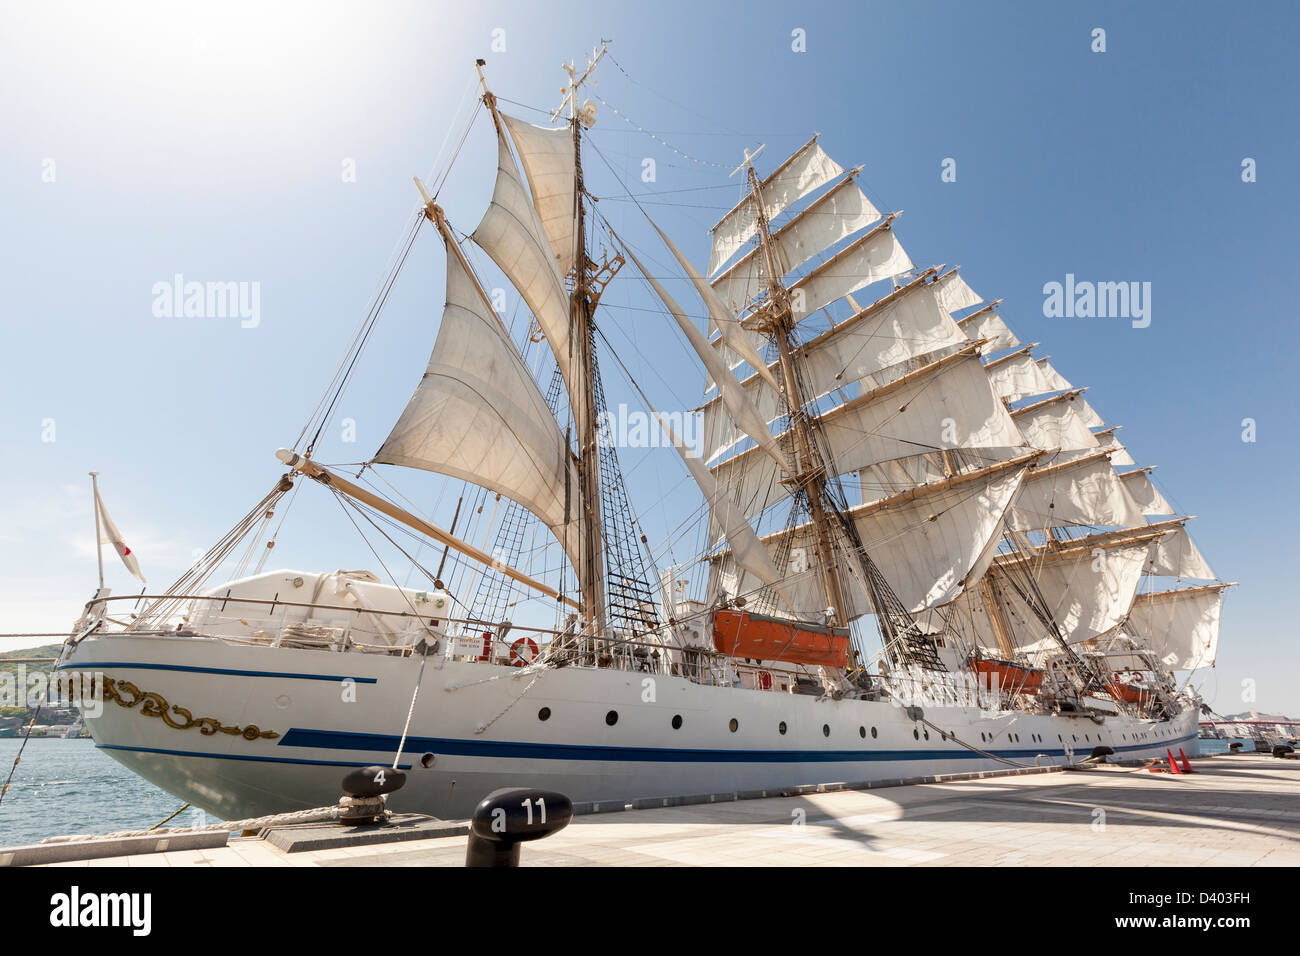 A tall ship, classified as a four masted barque, moored at Nagasaki docks with all sails set. - Stock Image